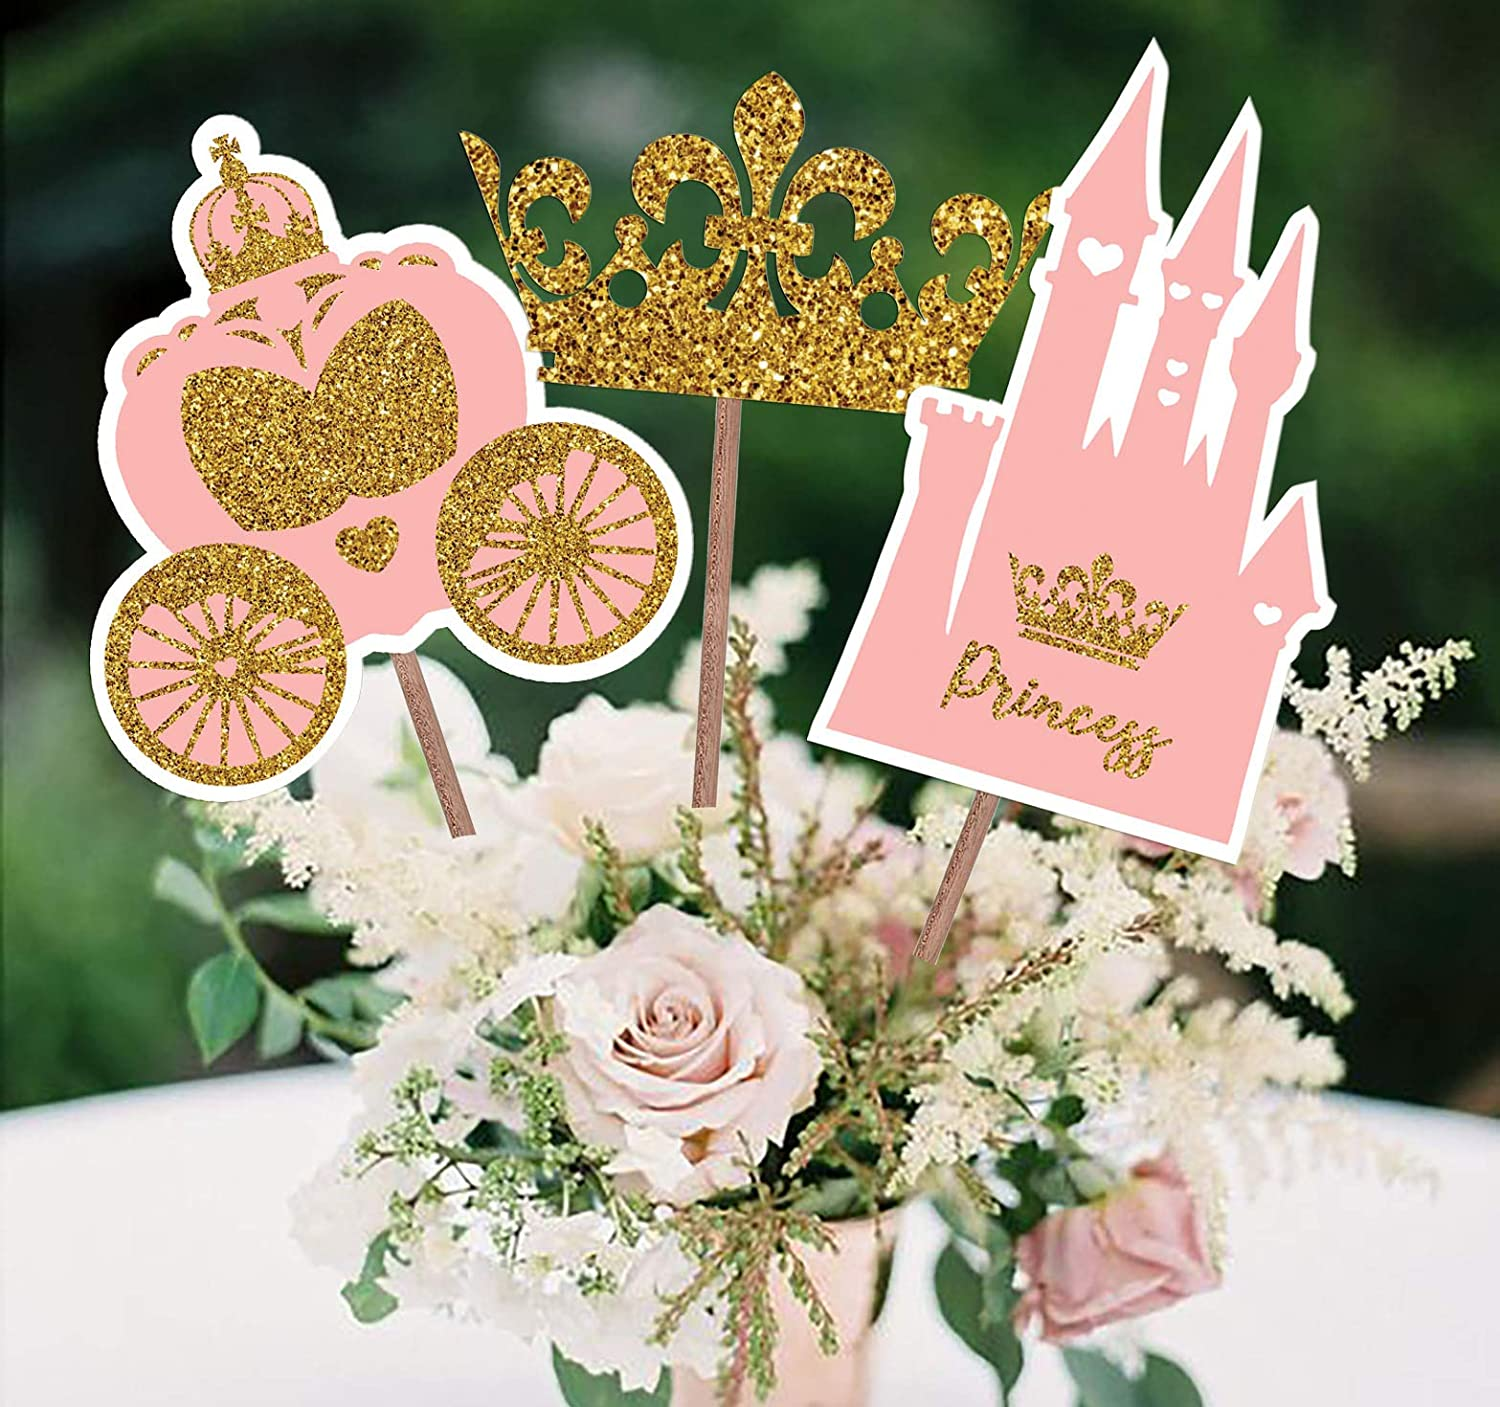 PARTY TARTY-Little Princess Crown -Pink and Gold Princess Centerpiece sticks for Girl Baby Shower or Birthday Party Decor-Table Topper Decorations Kit -Set of 15 Cardstock Pieces